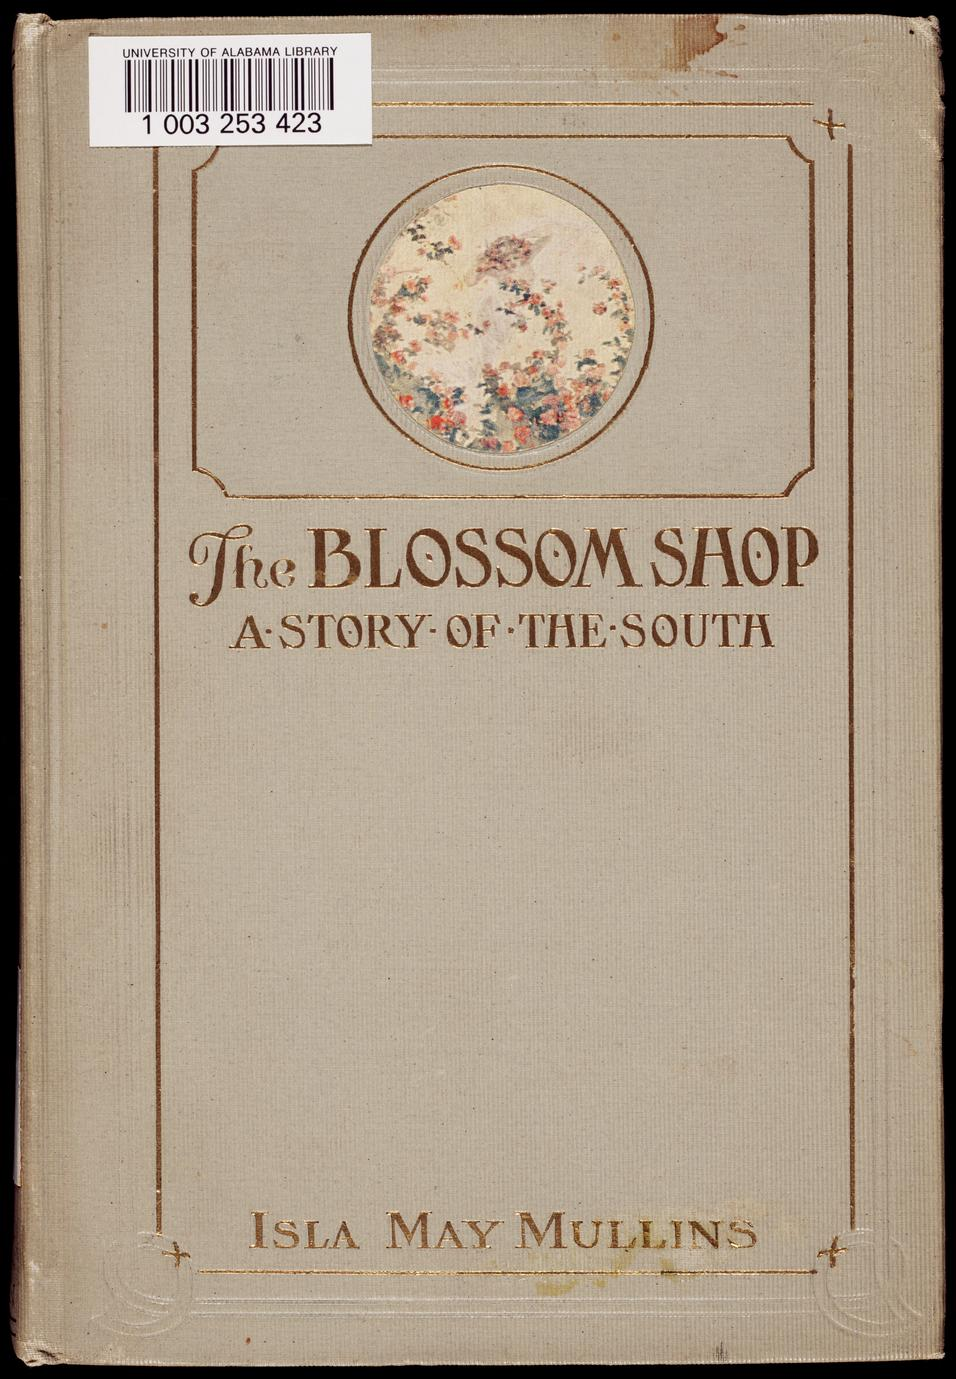 The blossom shop : a story of the South (1 of 2)